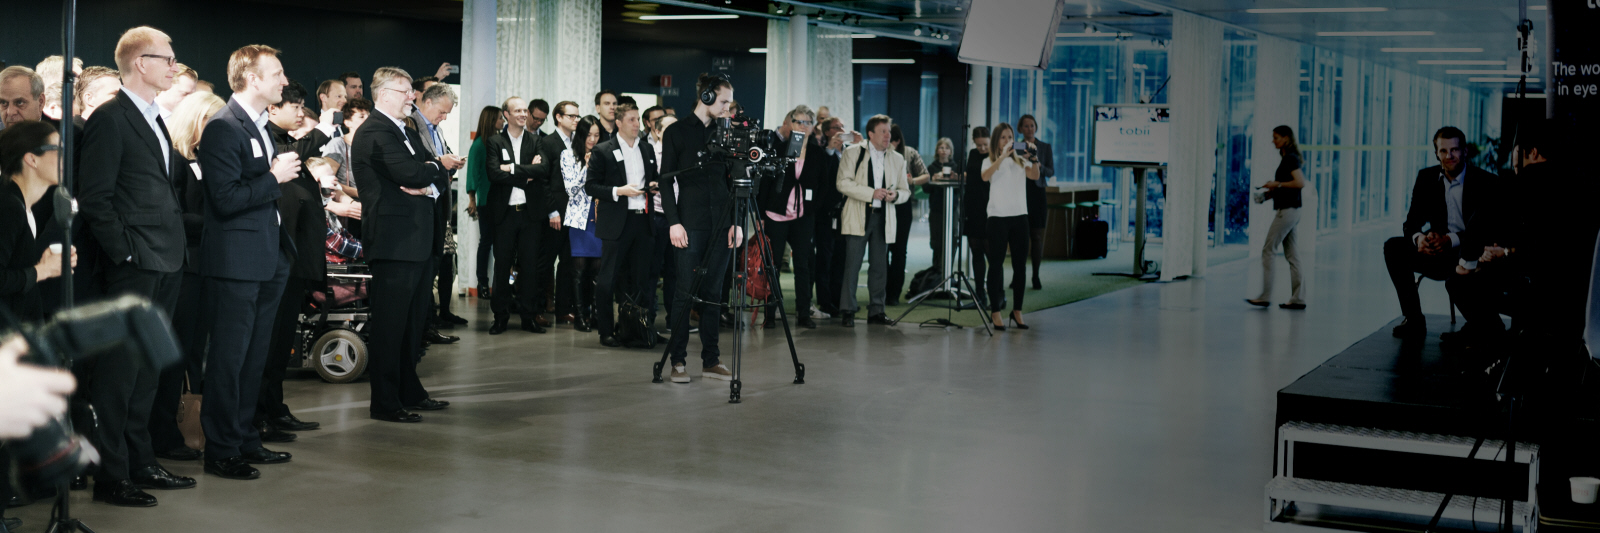 Audience at Tobii event